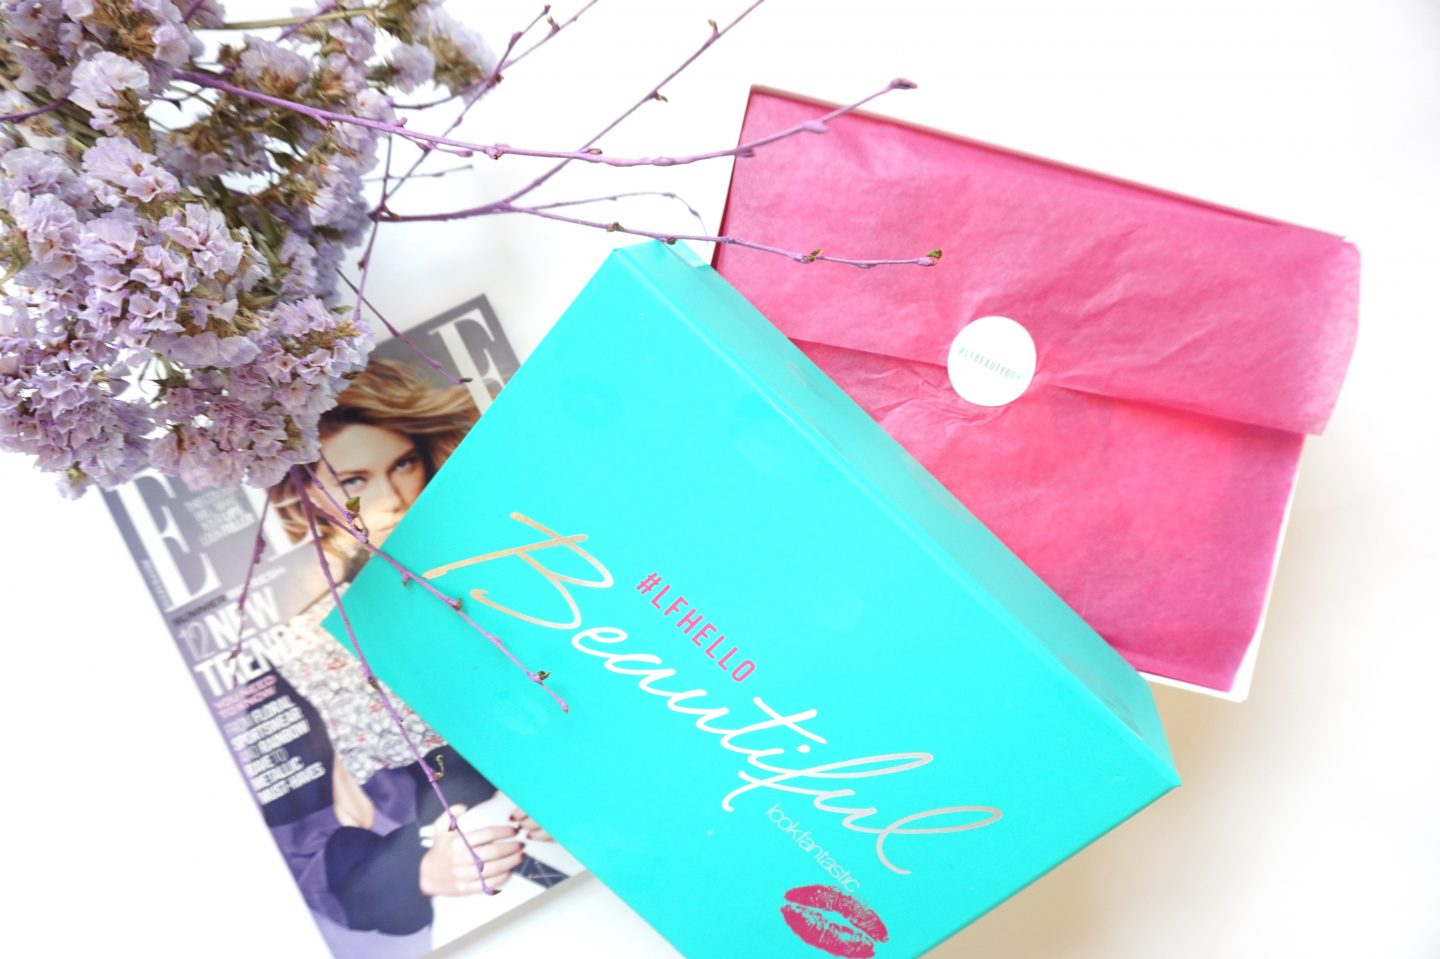 Beautybox: Lookfantastic May